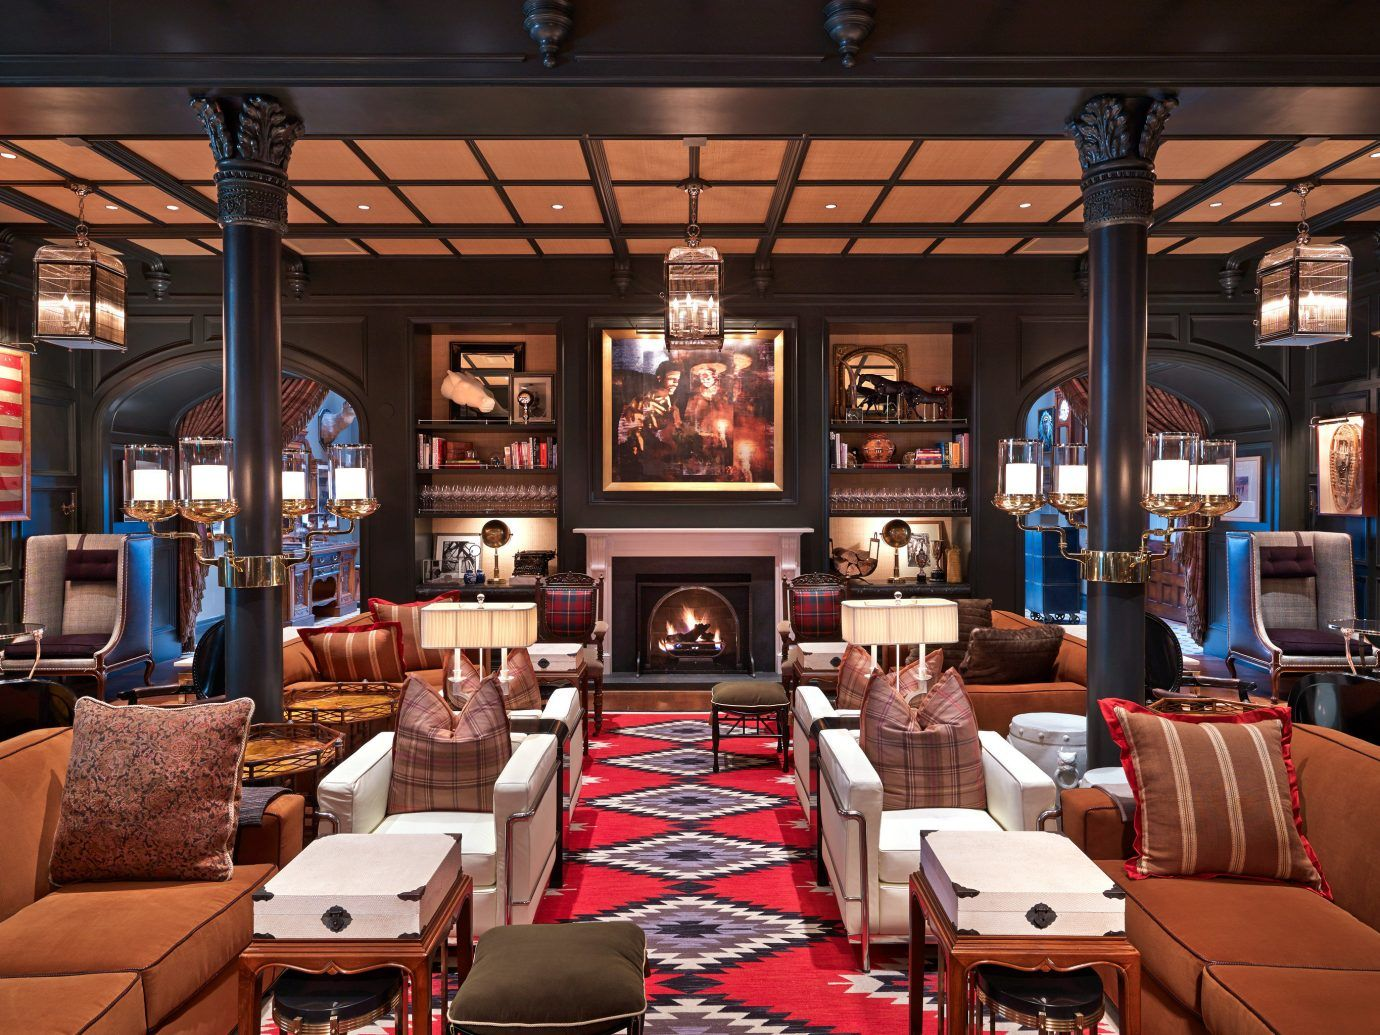 Fireplace Hotels Lobby Lounge Trip Ideas Winter indoor